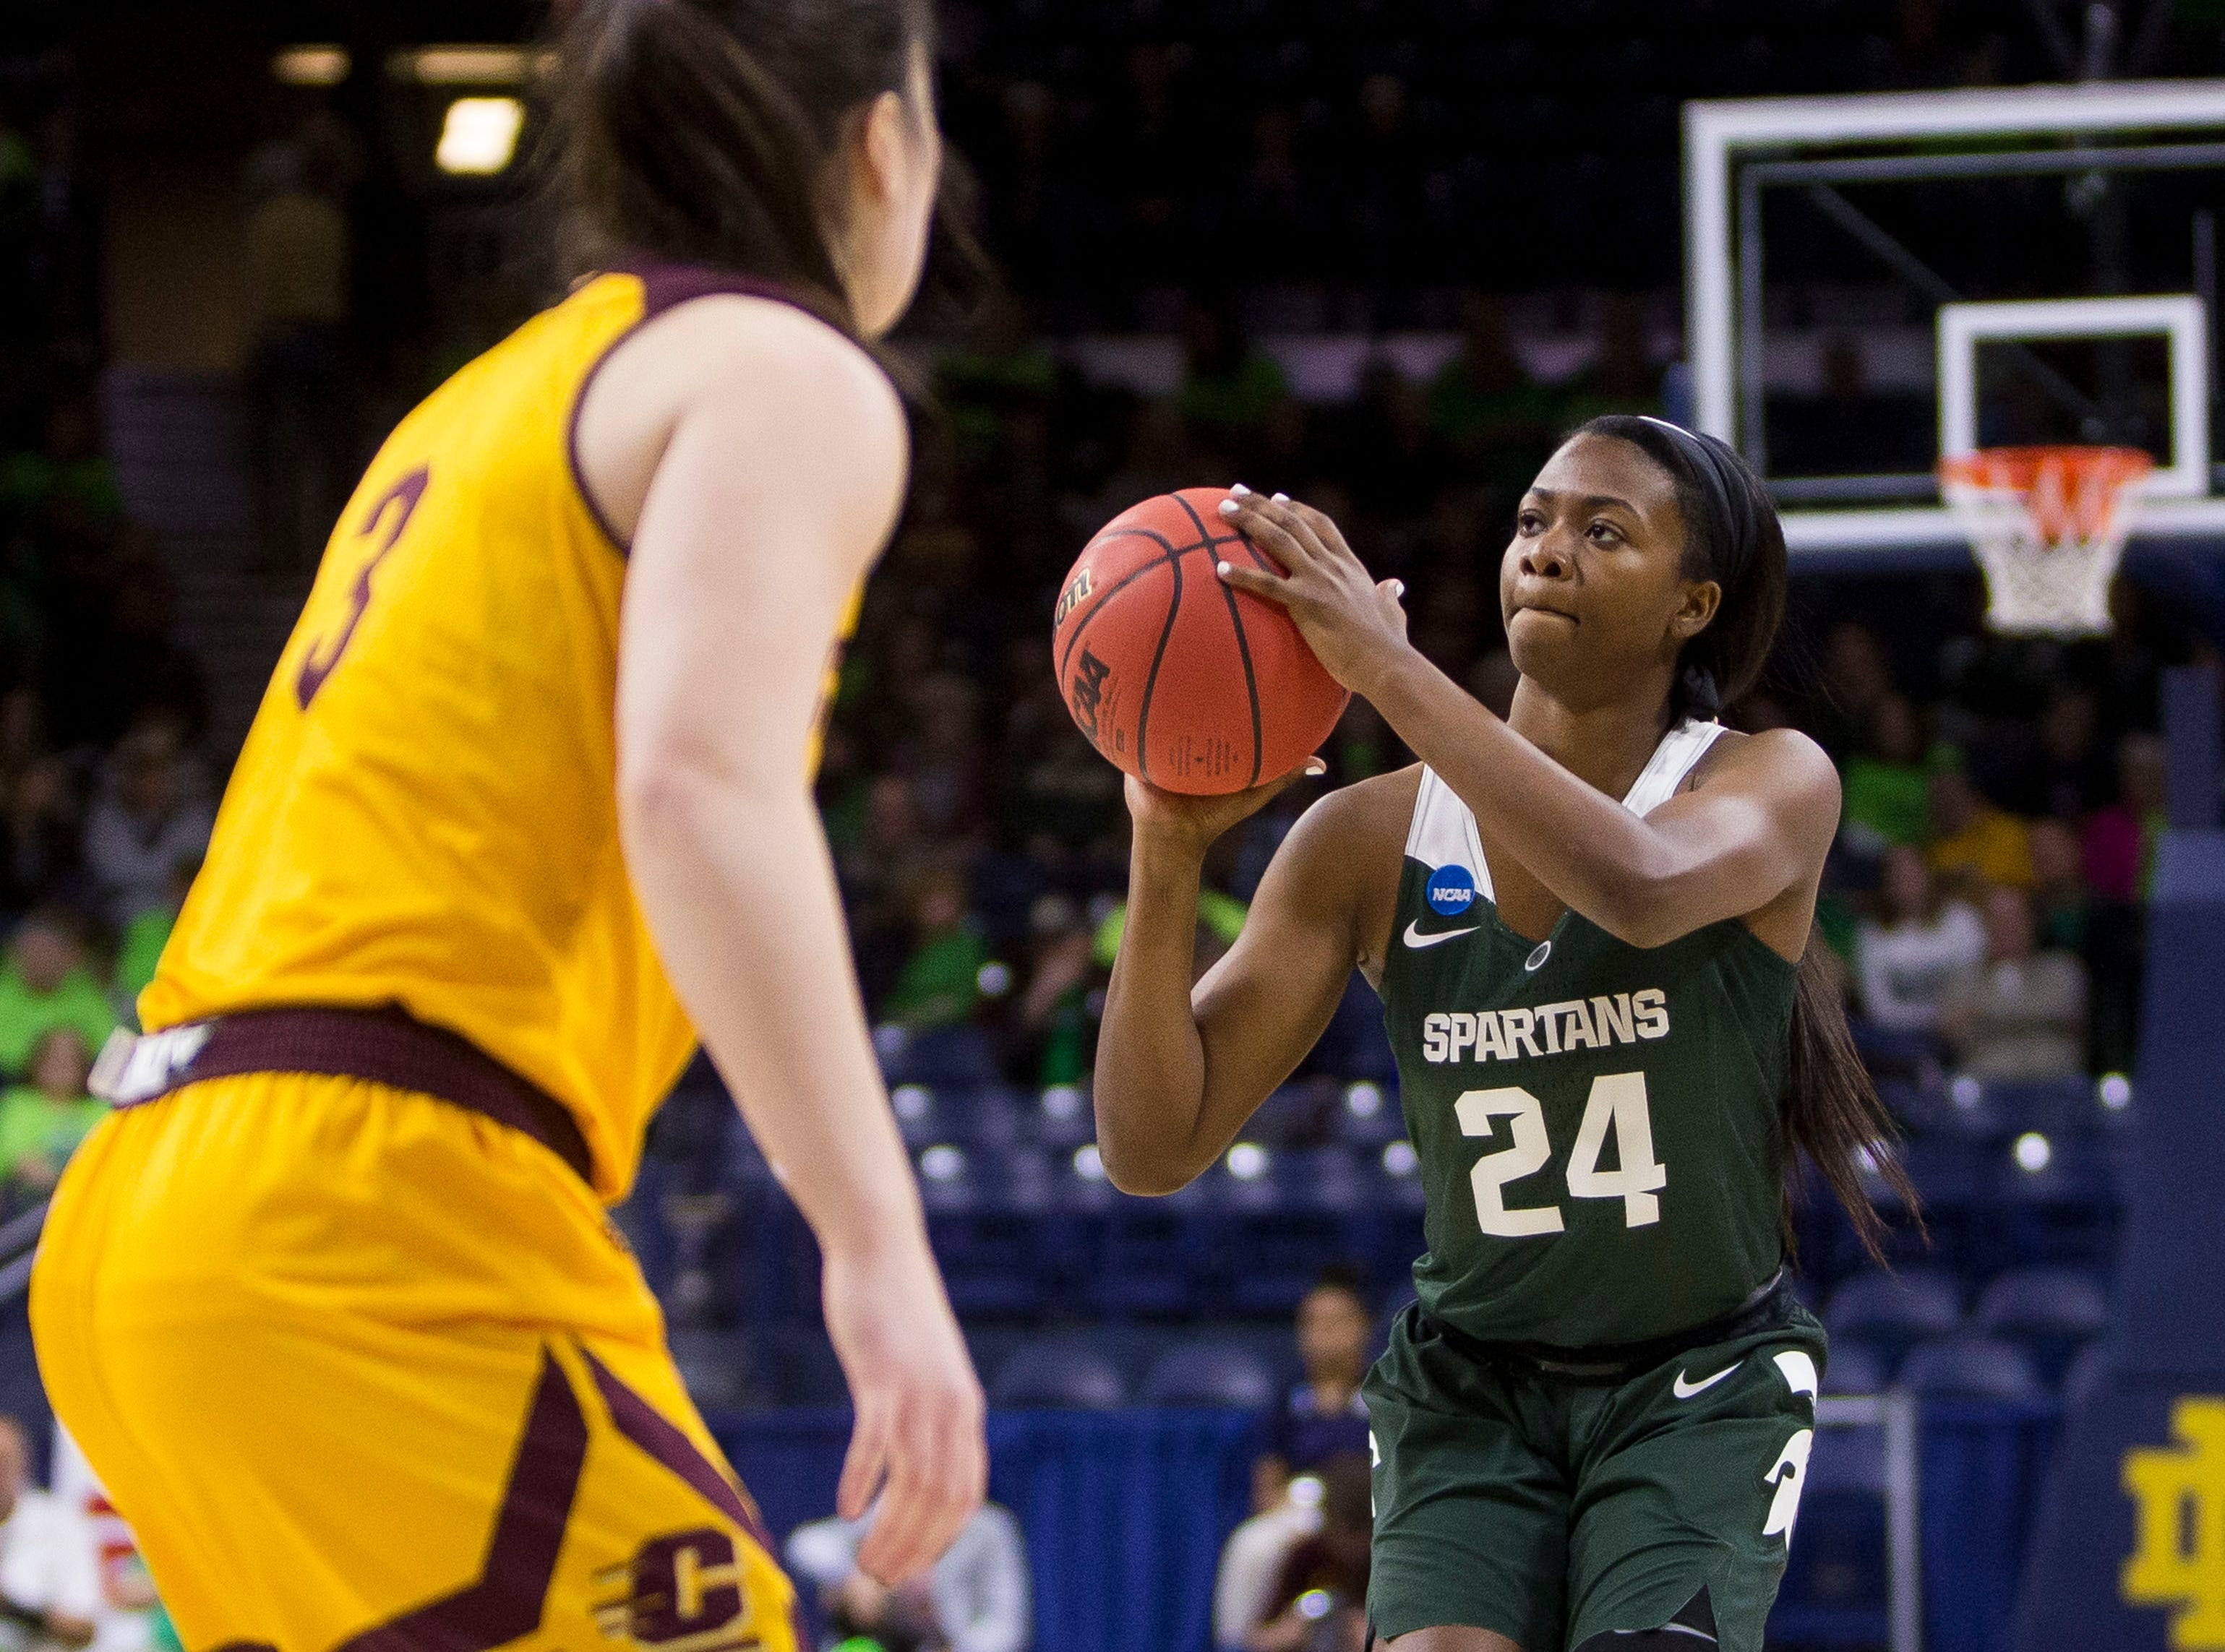 Michigan State's Nia Clouden (24) goes up for a 3-pointer in front of Central Michigan's Presley Hudson (3) during a first-round game in the NCAA women's college basketball tournament in South Bend, Ind., Saturday, March 23, 2019.